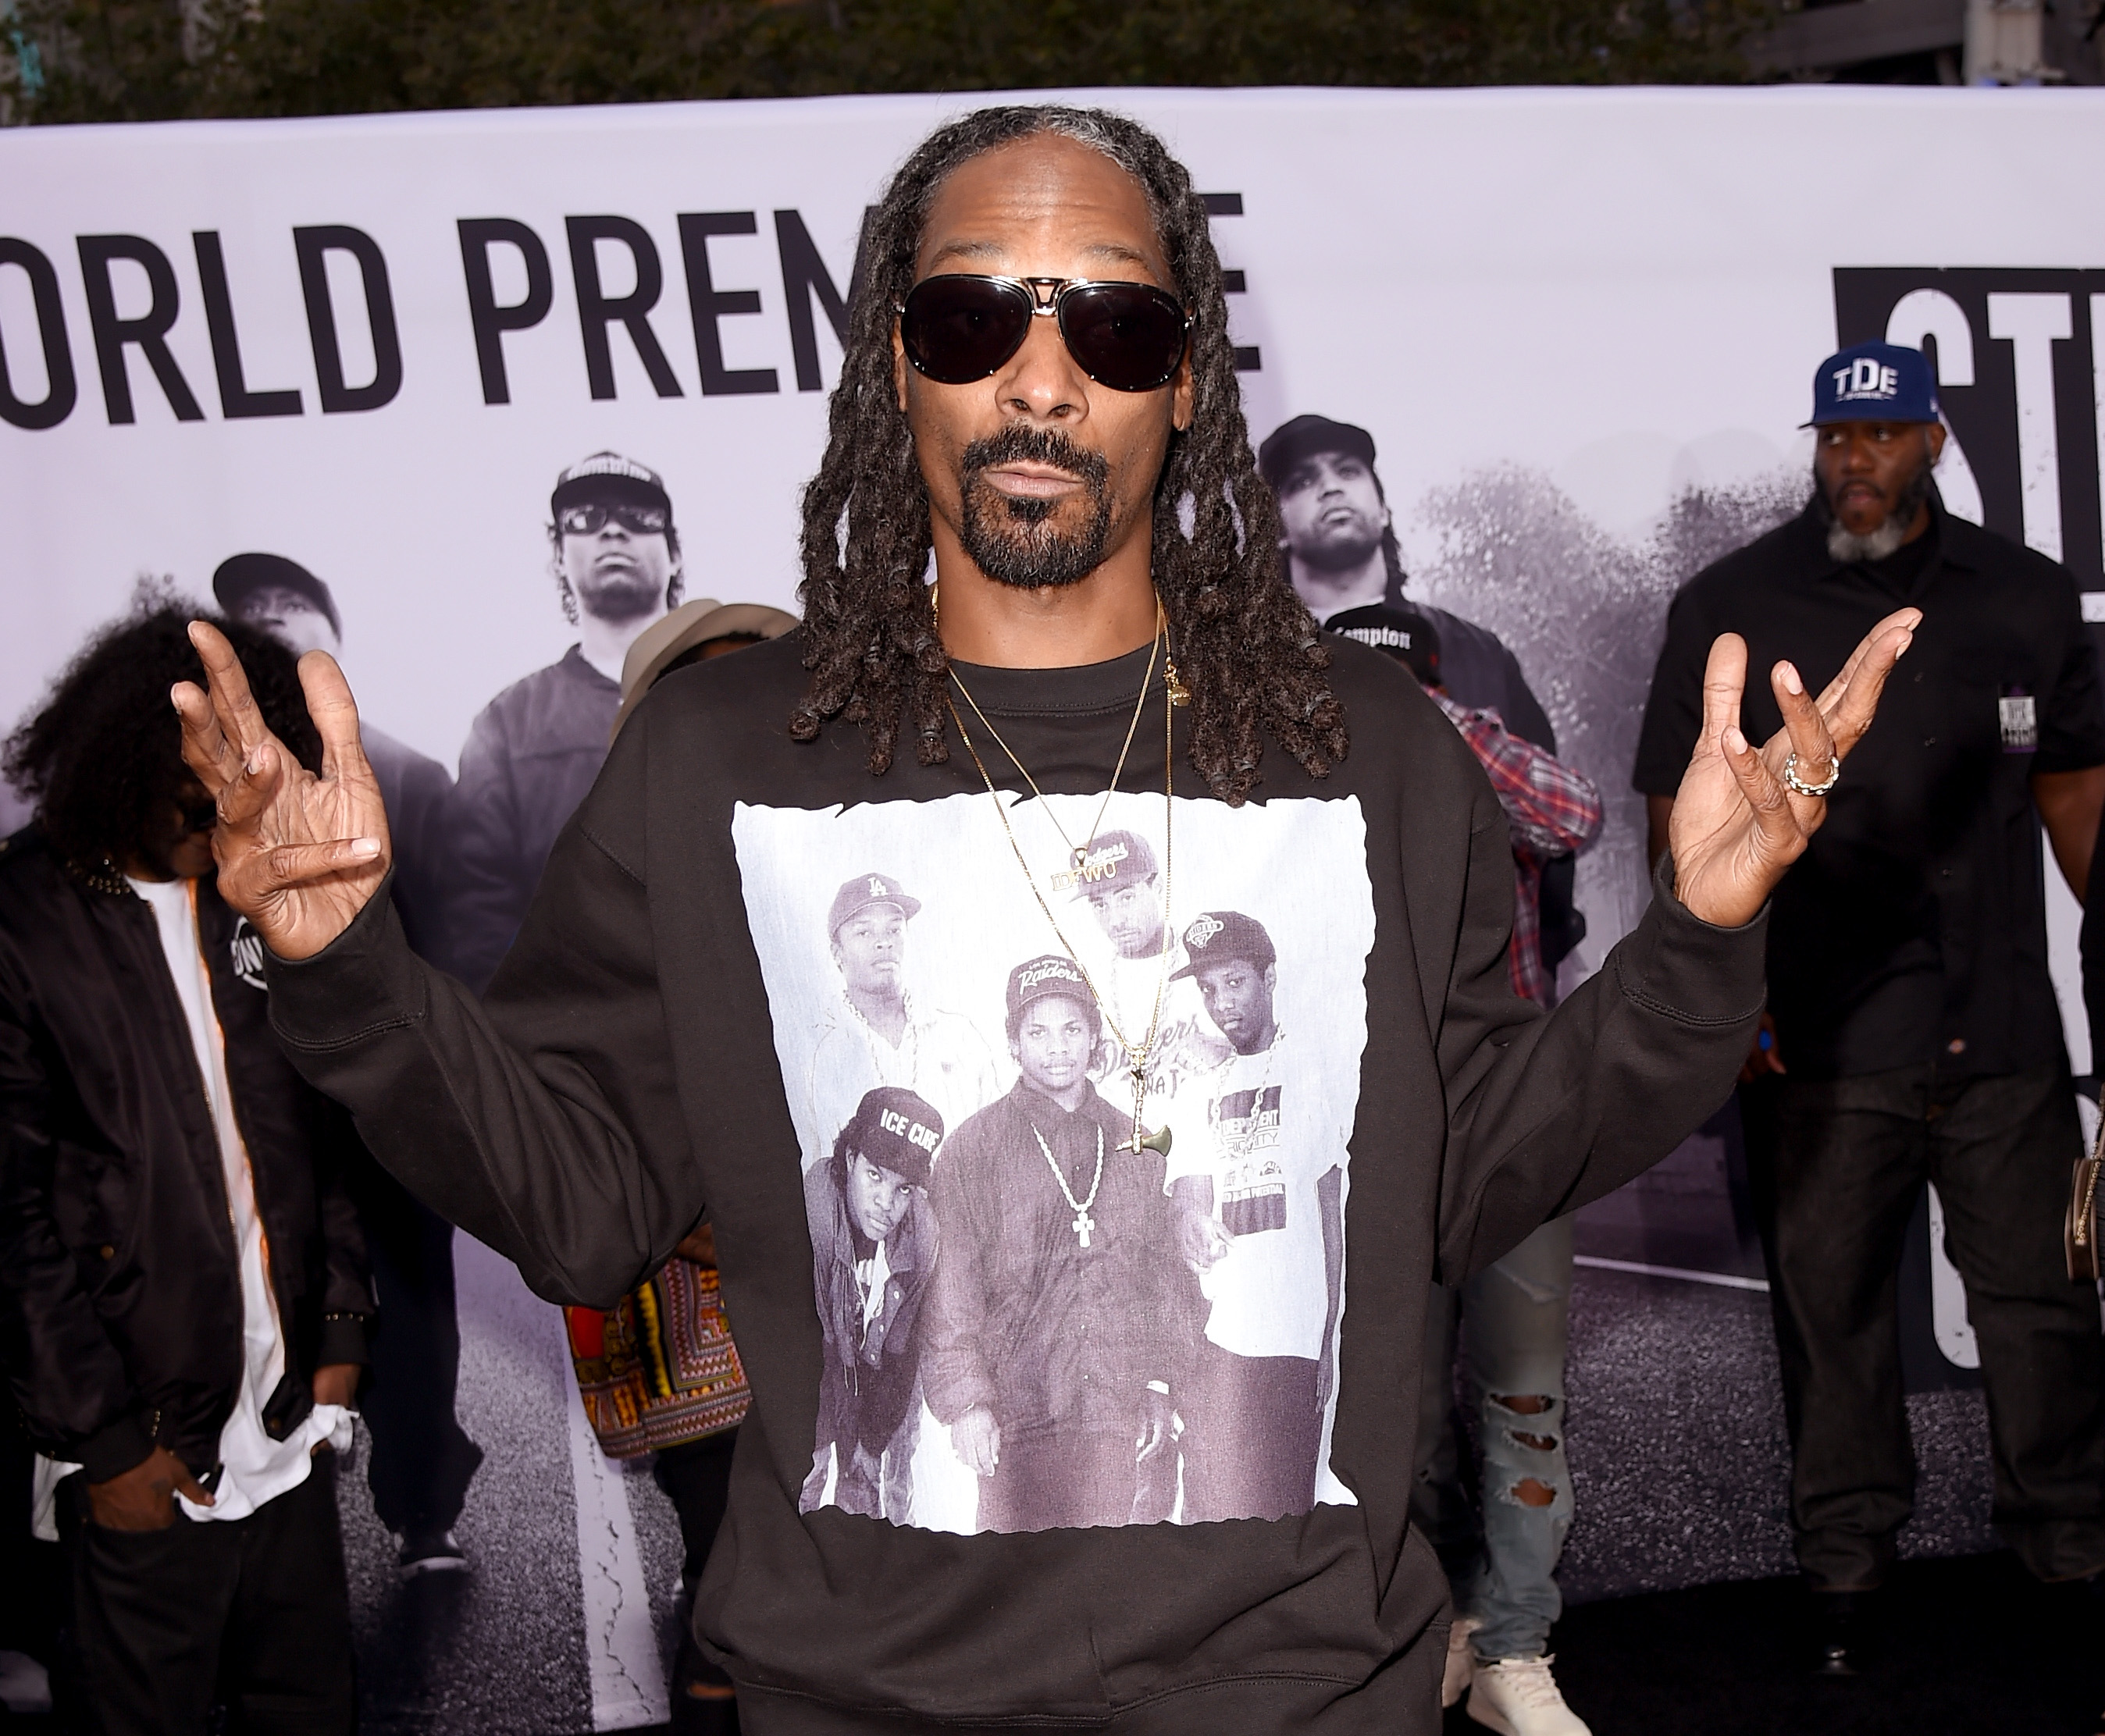 GettyImages 483633218 Woman Gets Random Voicemail From Snoop Dogg, Things Quickly Turn Heated